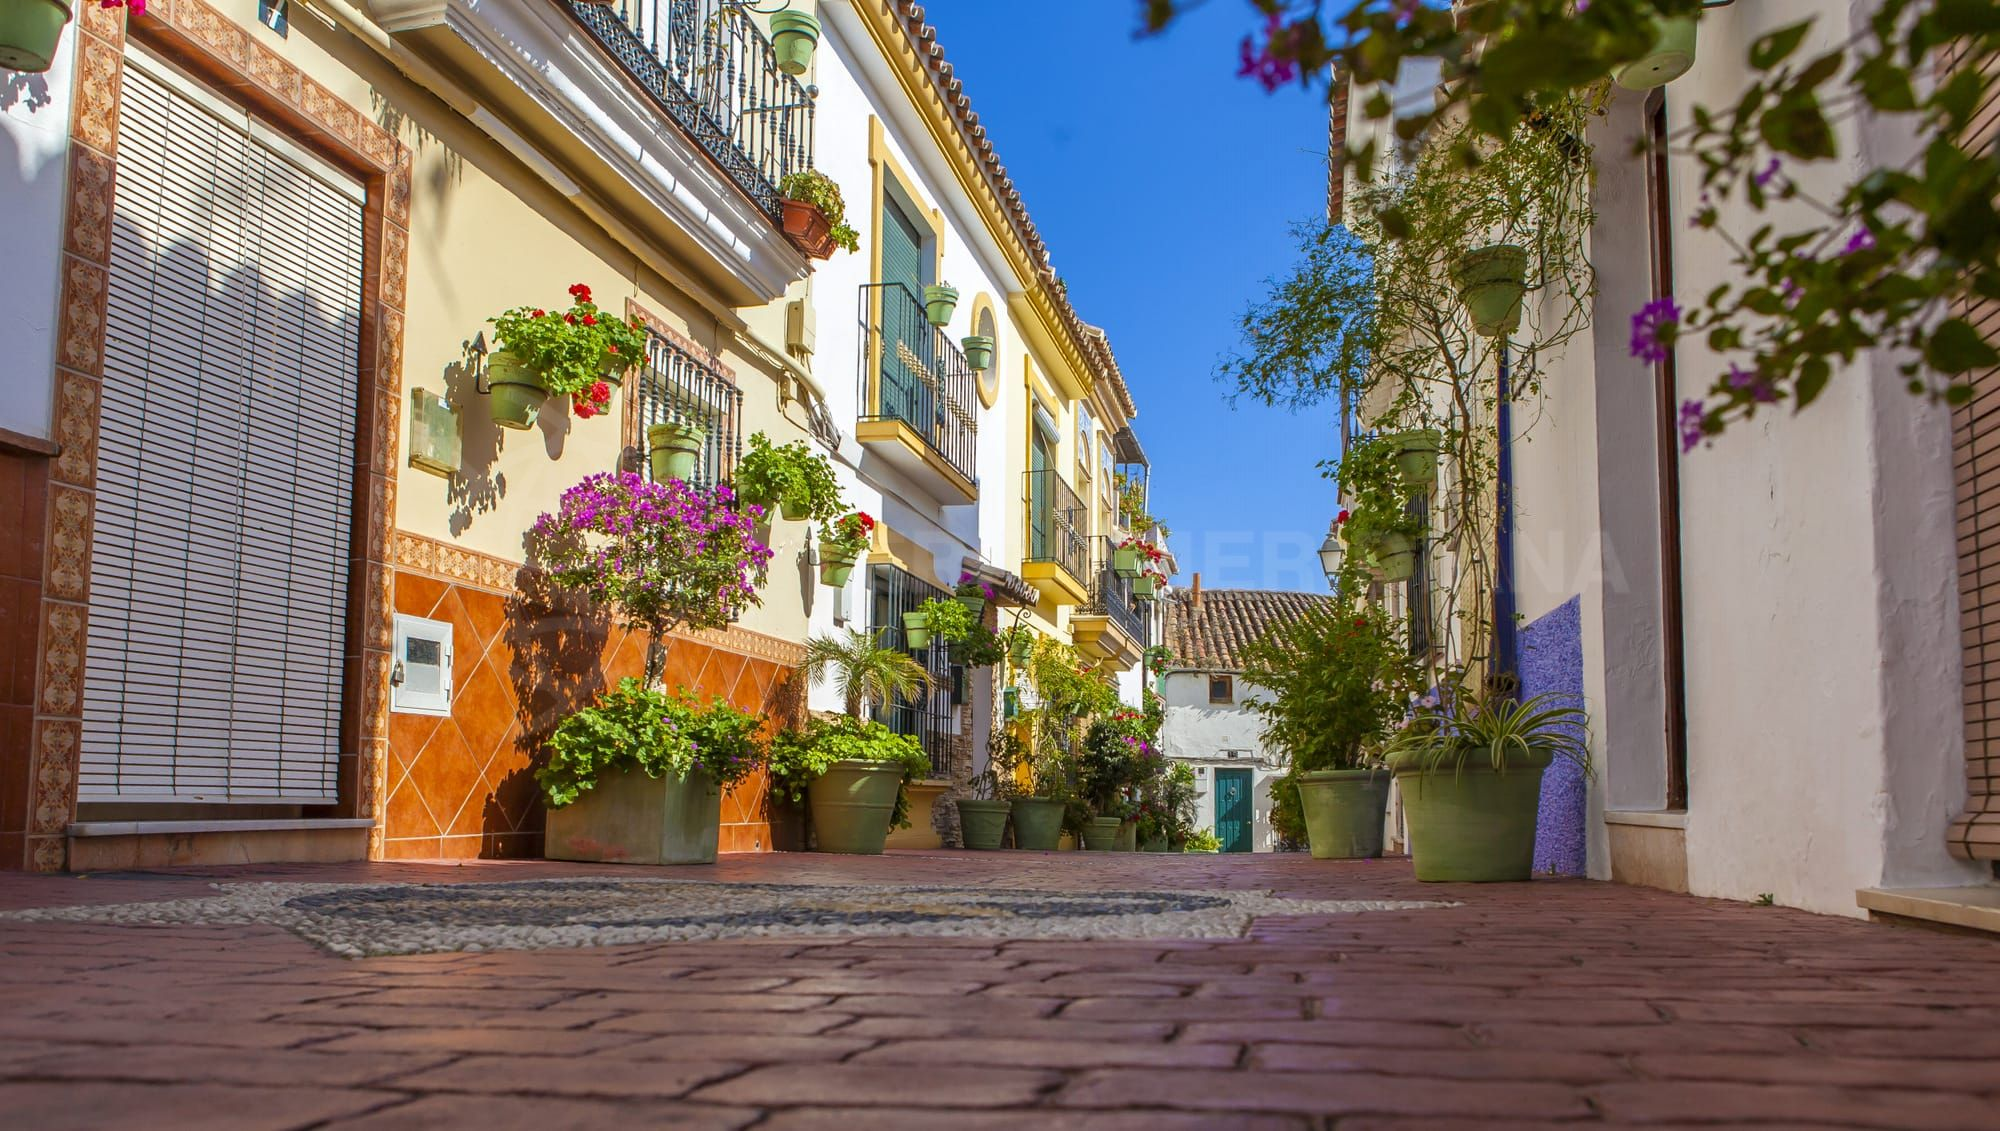 For ABC, Estepona is a green and pleasant town